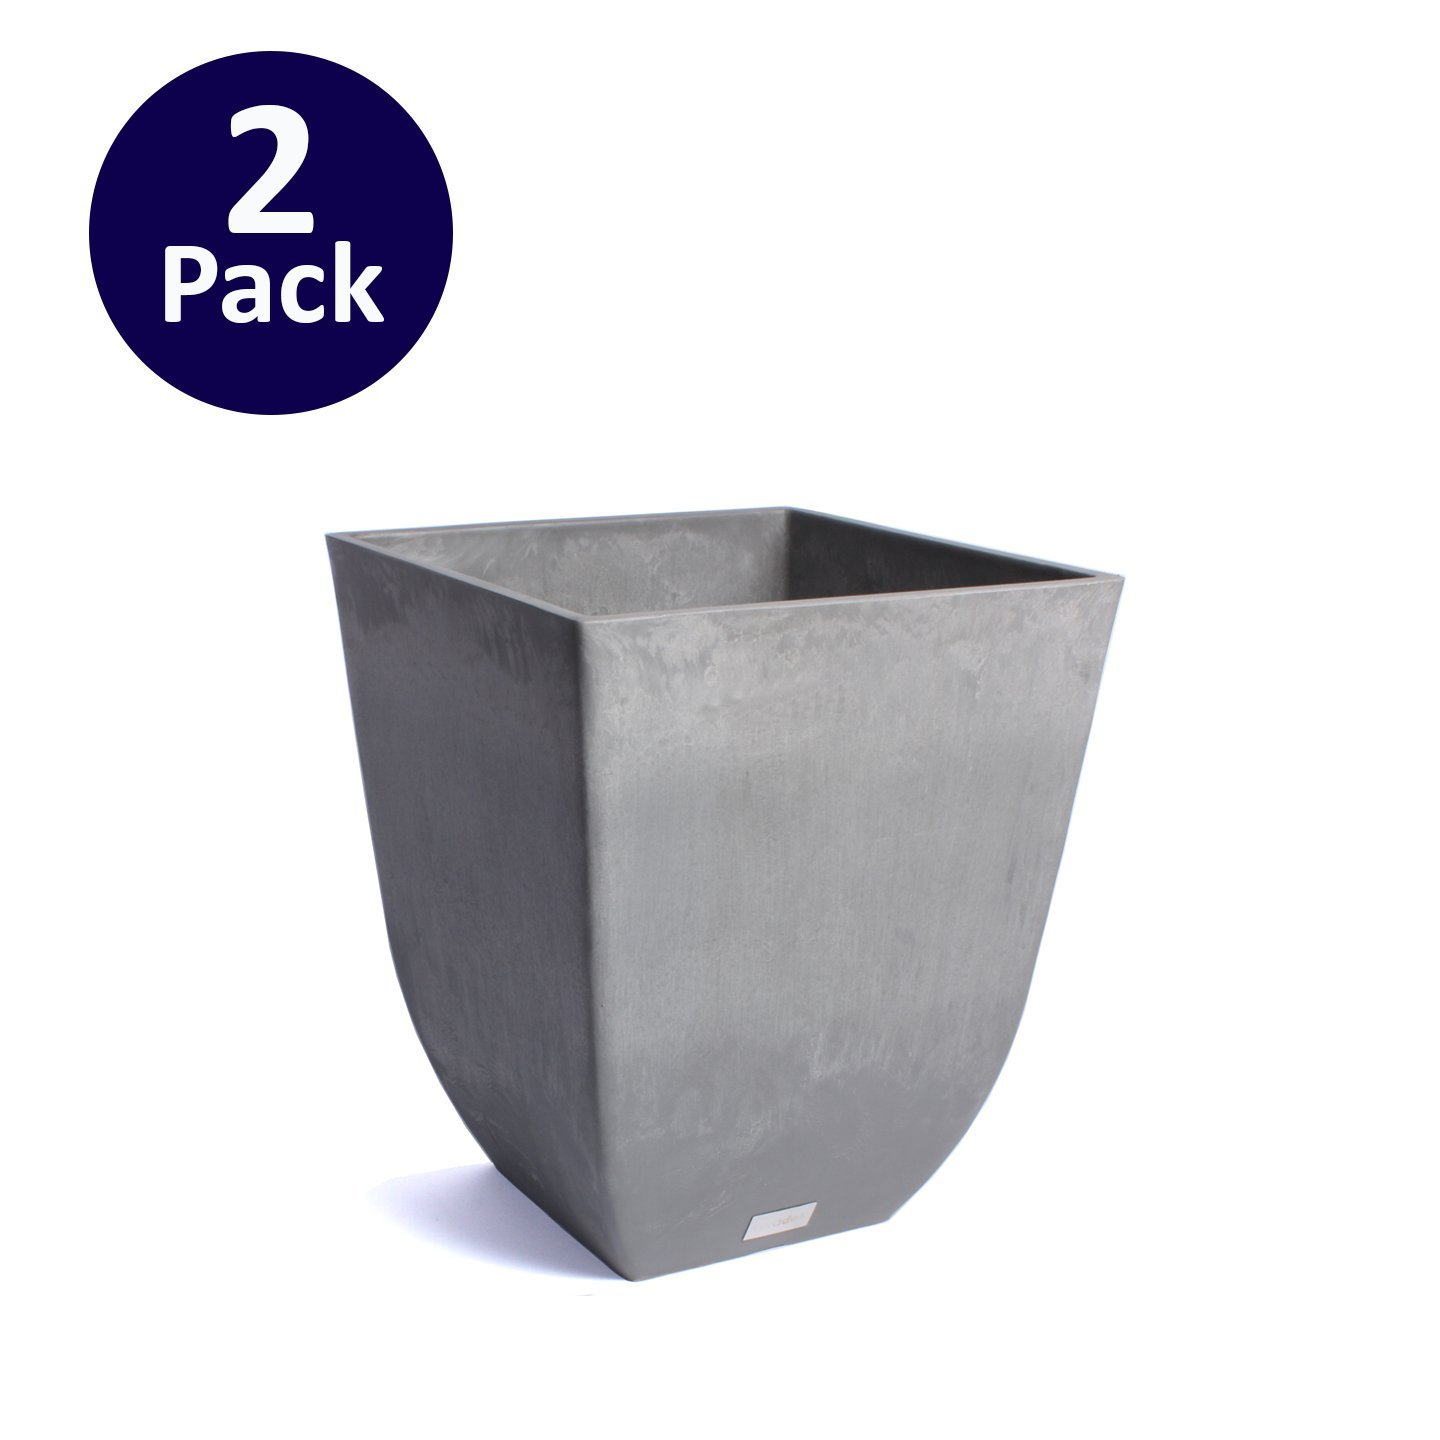 Veradek Sierra Square Planter - 2 Pack (Charcoal) by Veradek